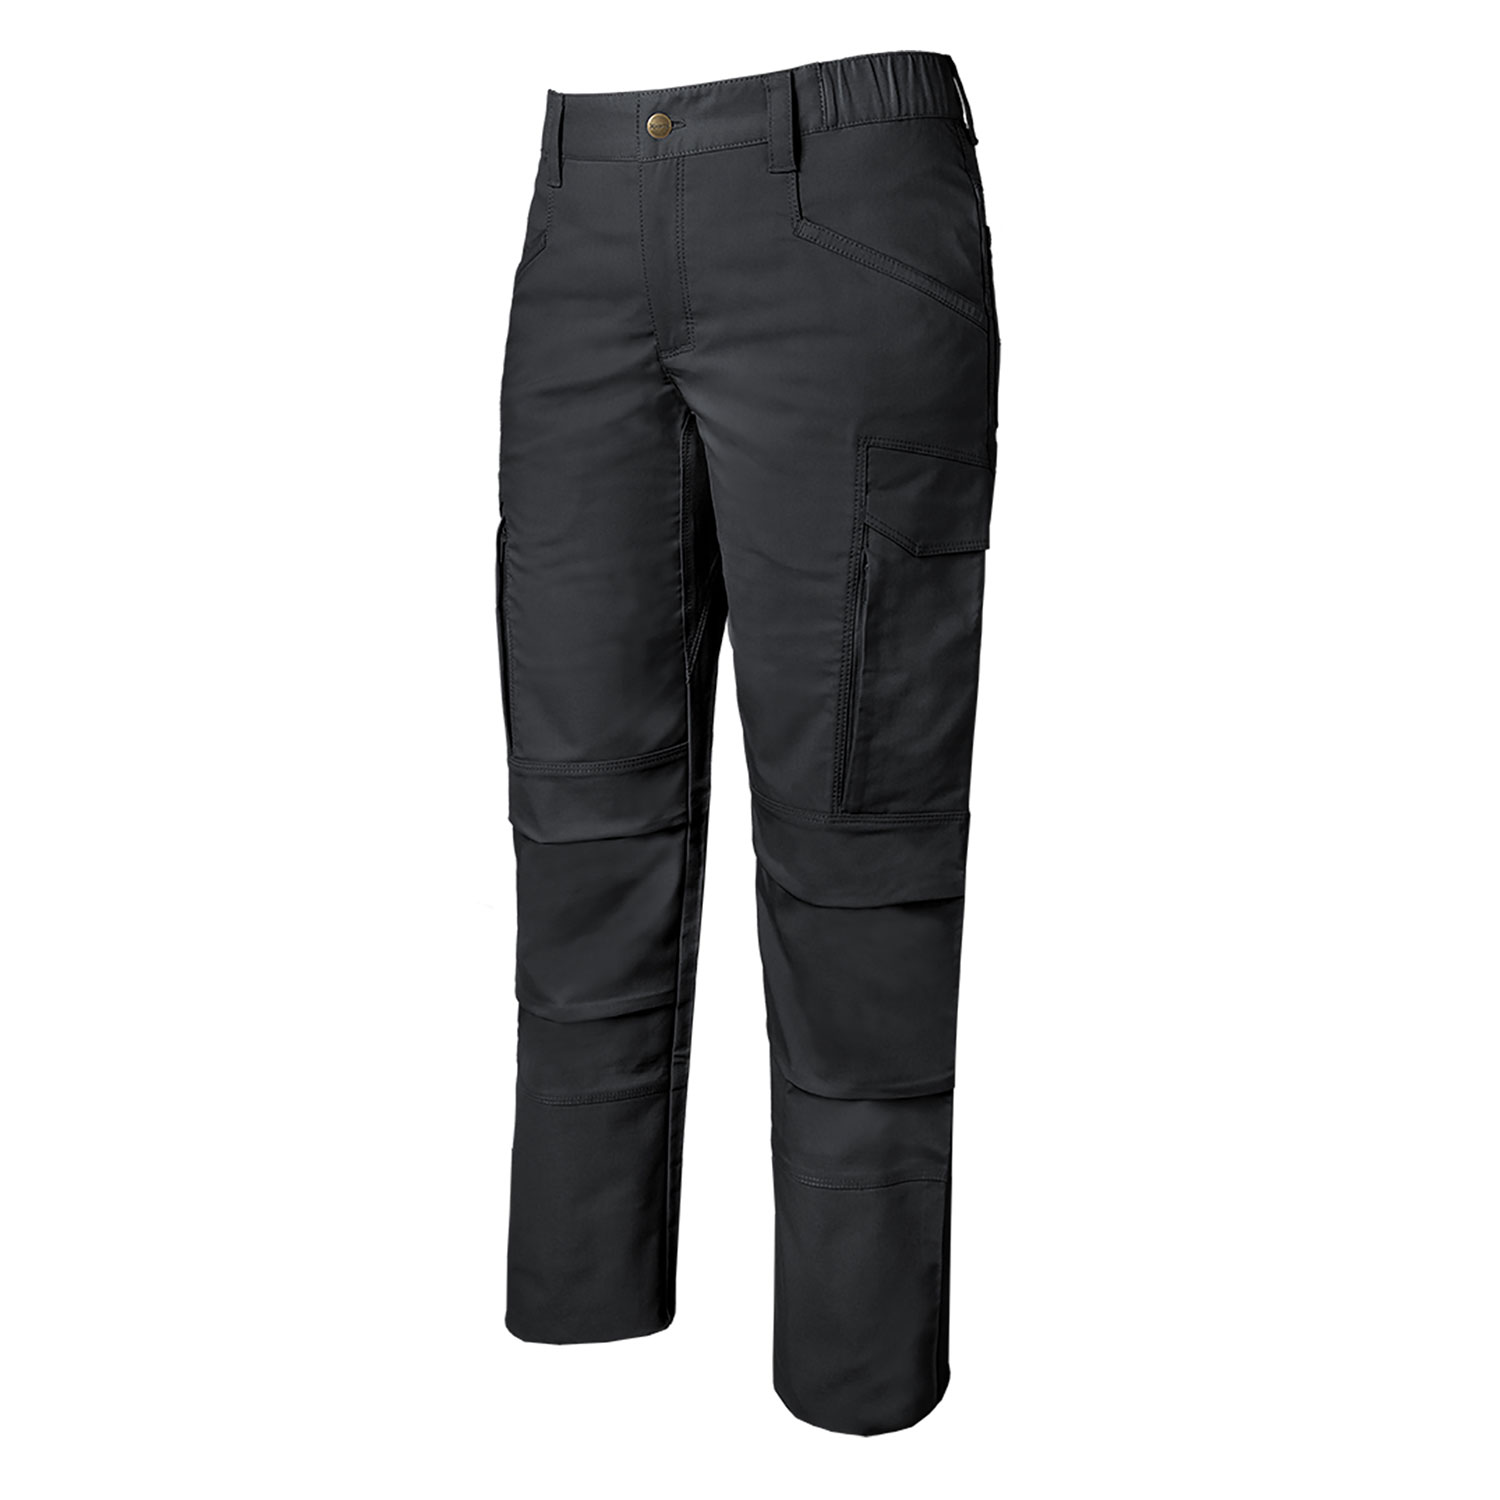 Vertx Women's Fusion LT Stretch Tactical Pants